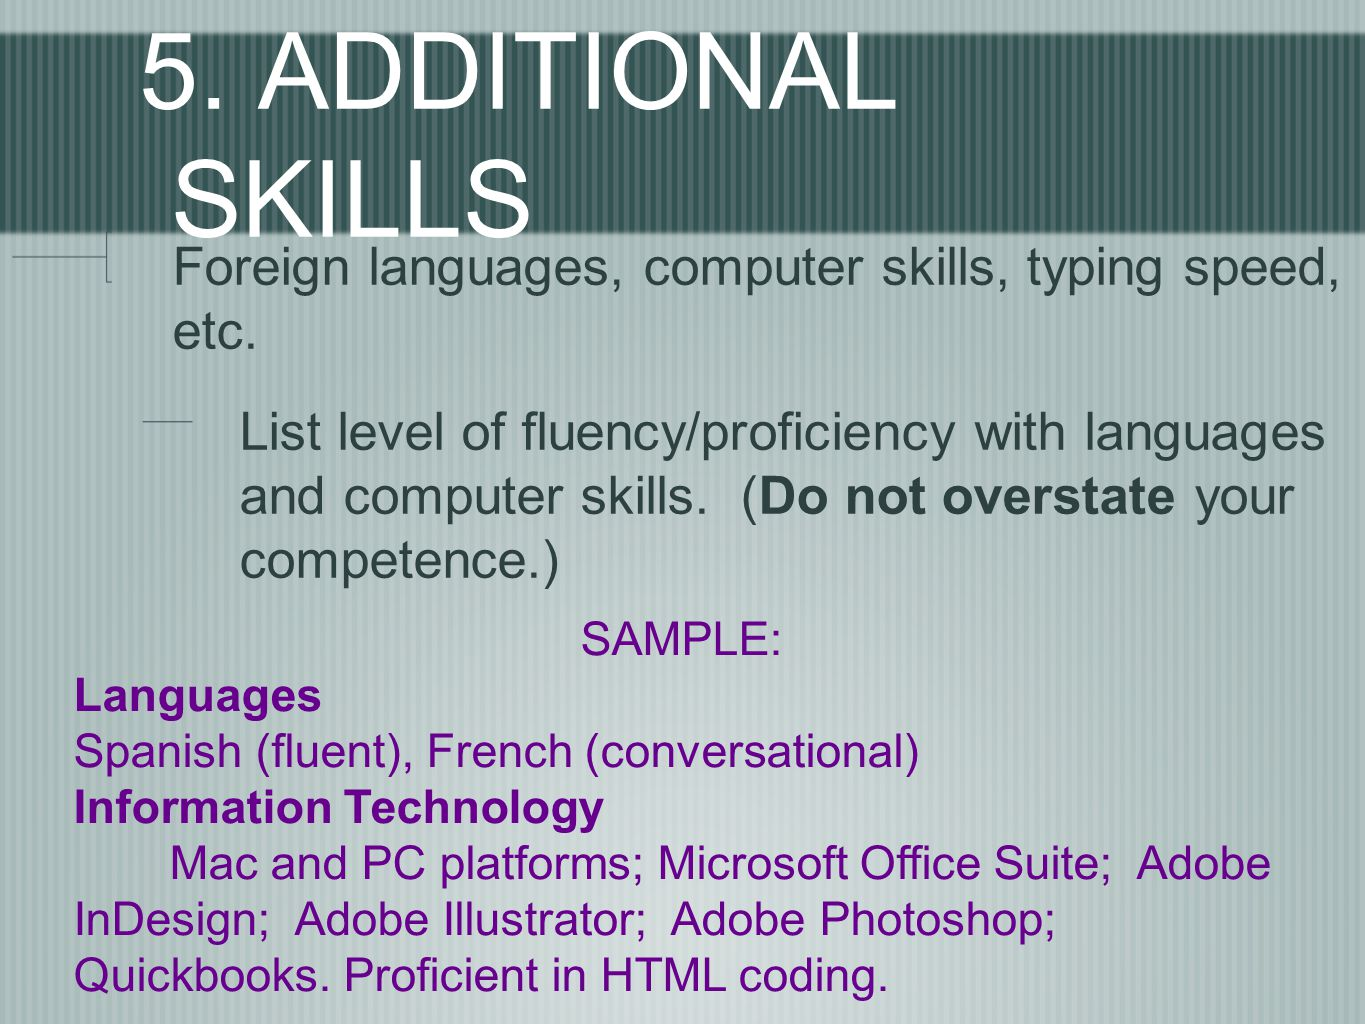 5. ADDITIONAL SKILLS Foreign languages, computer skills, typing speed, etc. List level of fluency/proficiency with languages and computer skills. (Do